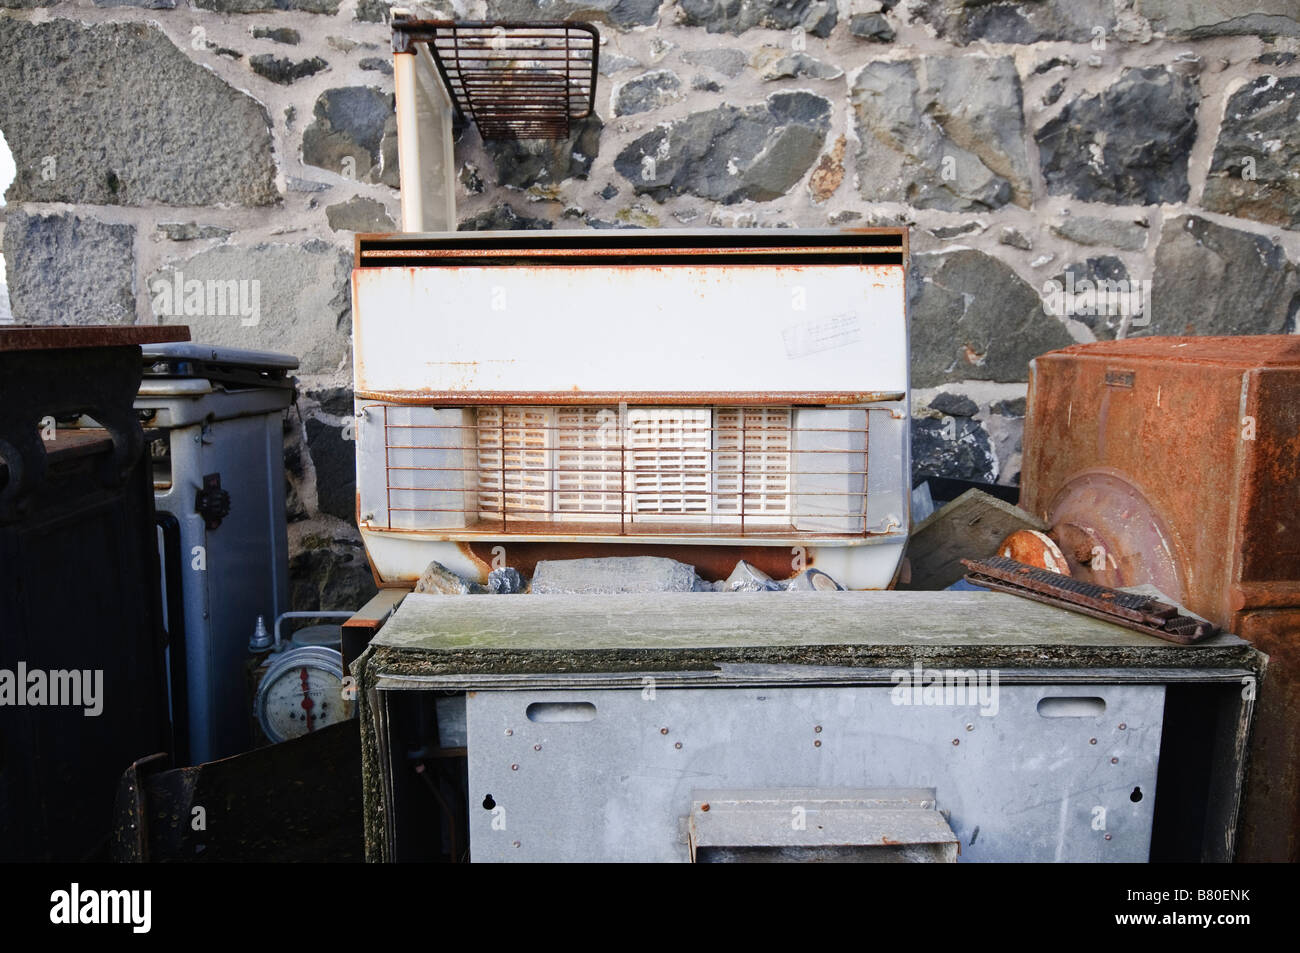 Old gas appliances piled up outside for scrap metal - Stock Image